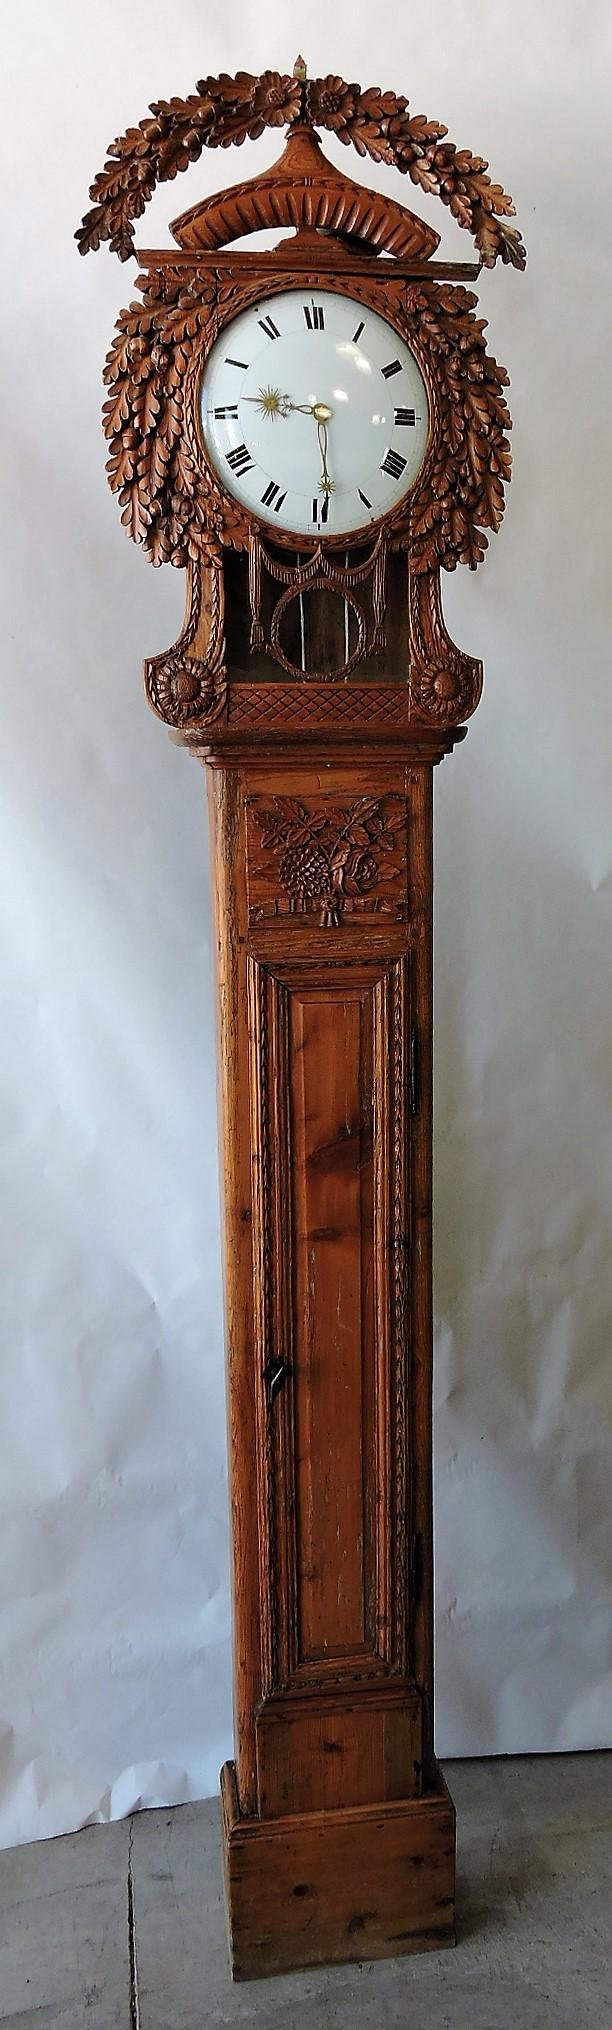 Pine tall case clock with carved oak